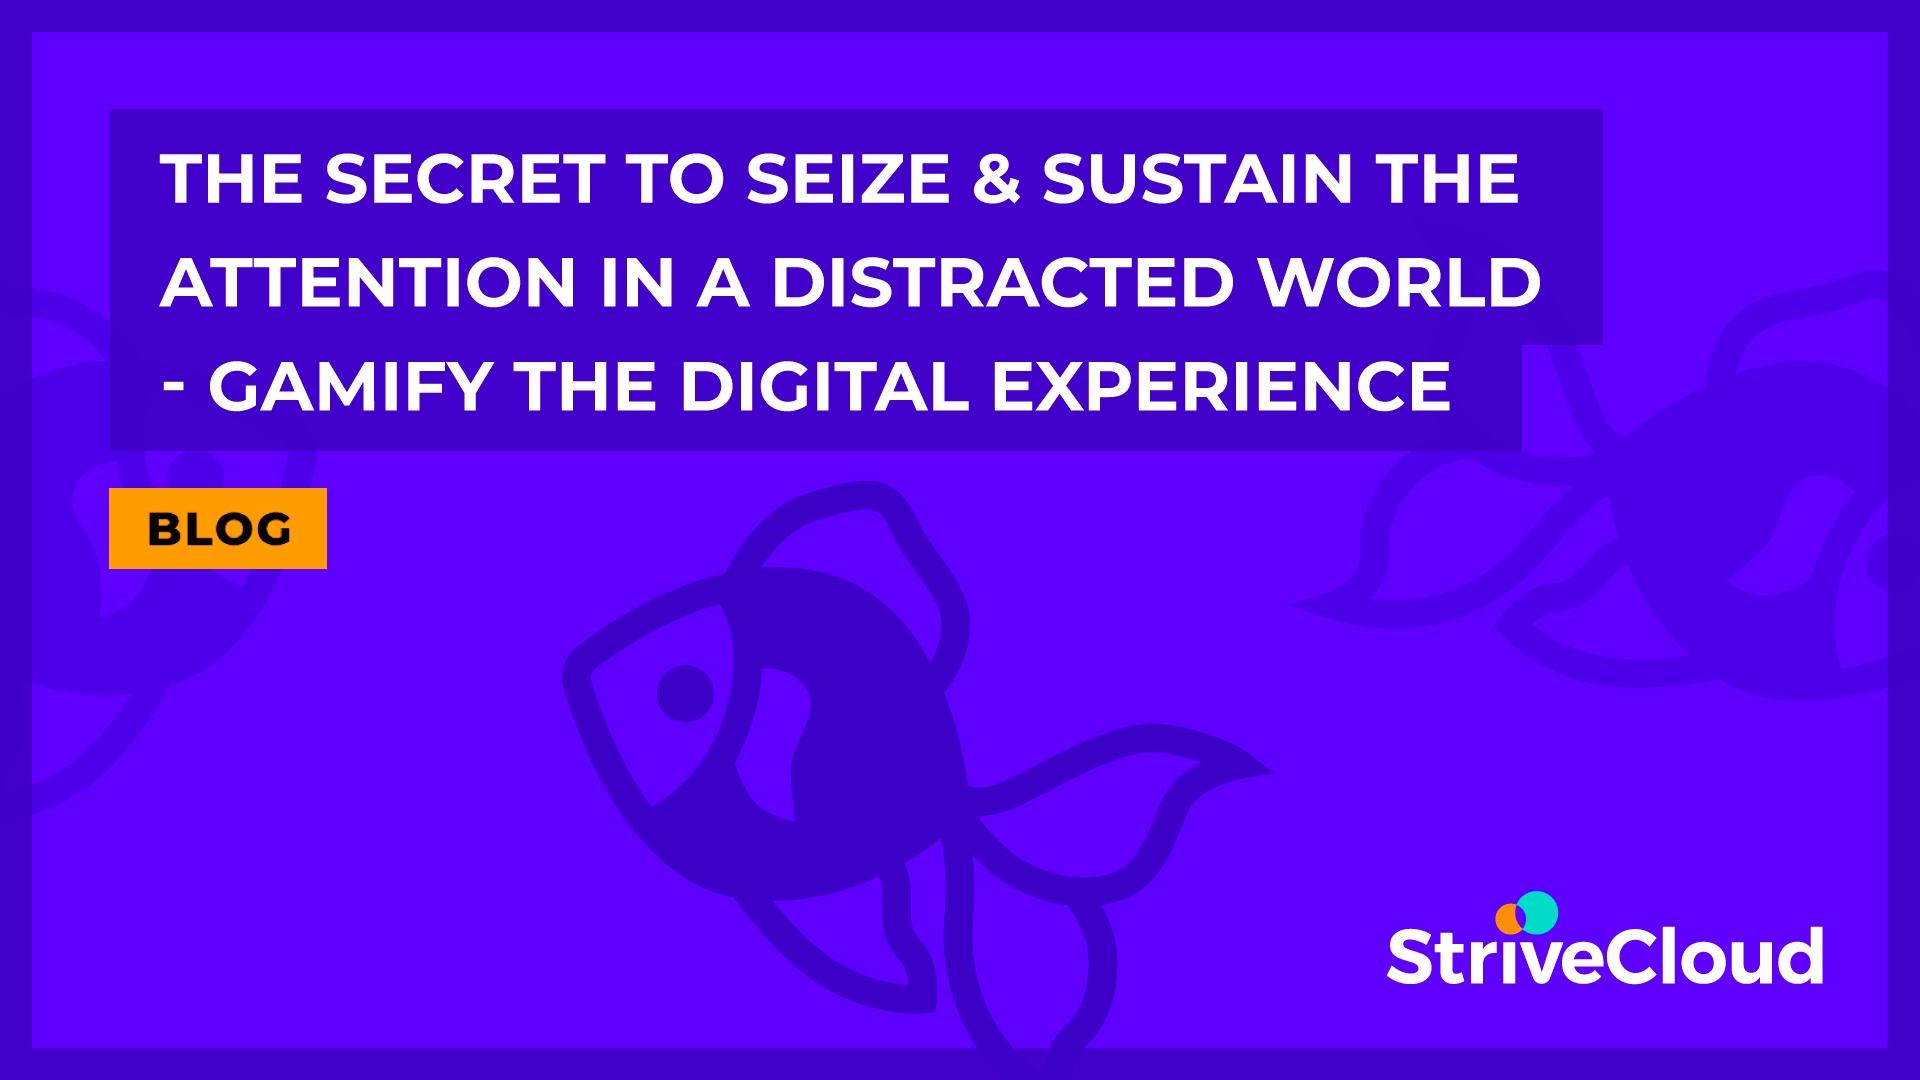 seize-and-sustain-attention-in-distracted-world-gamification-digital-engagement